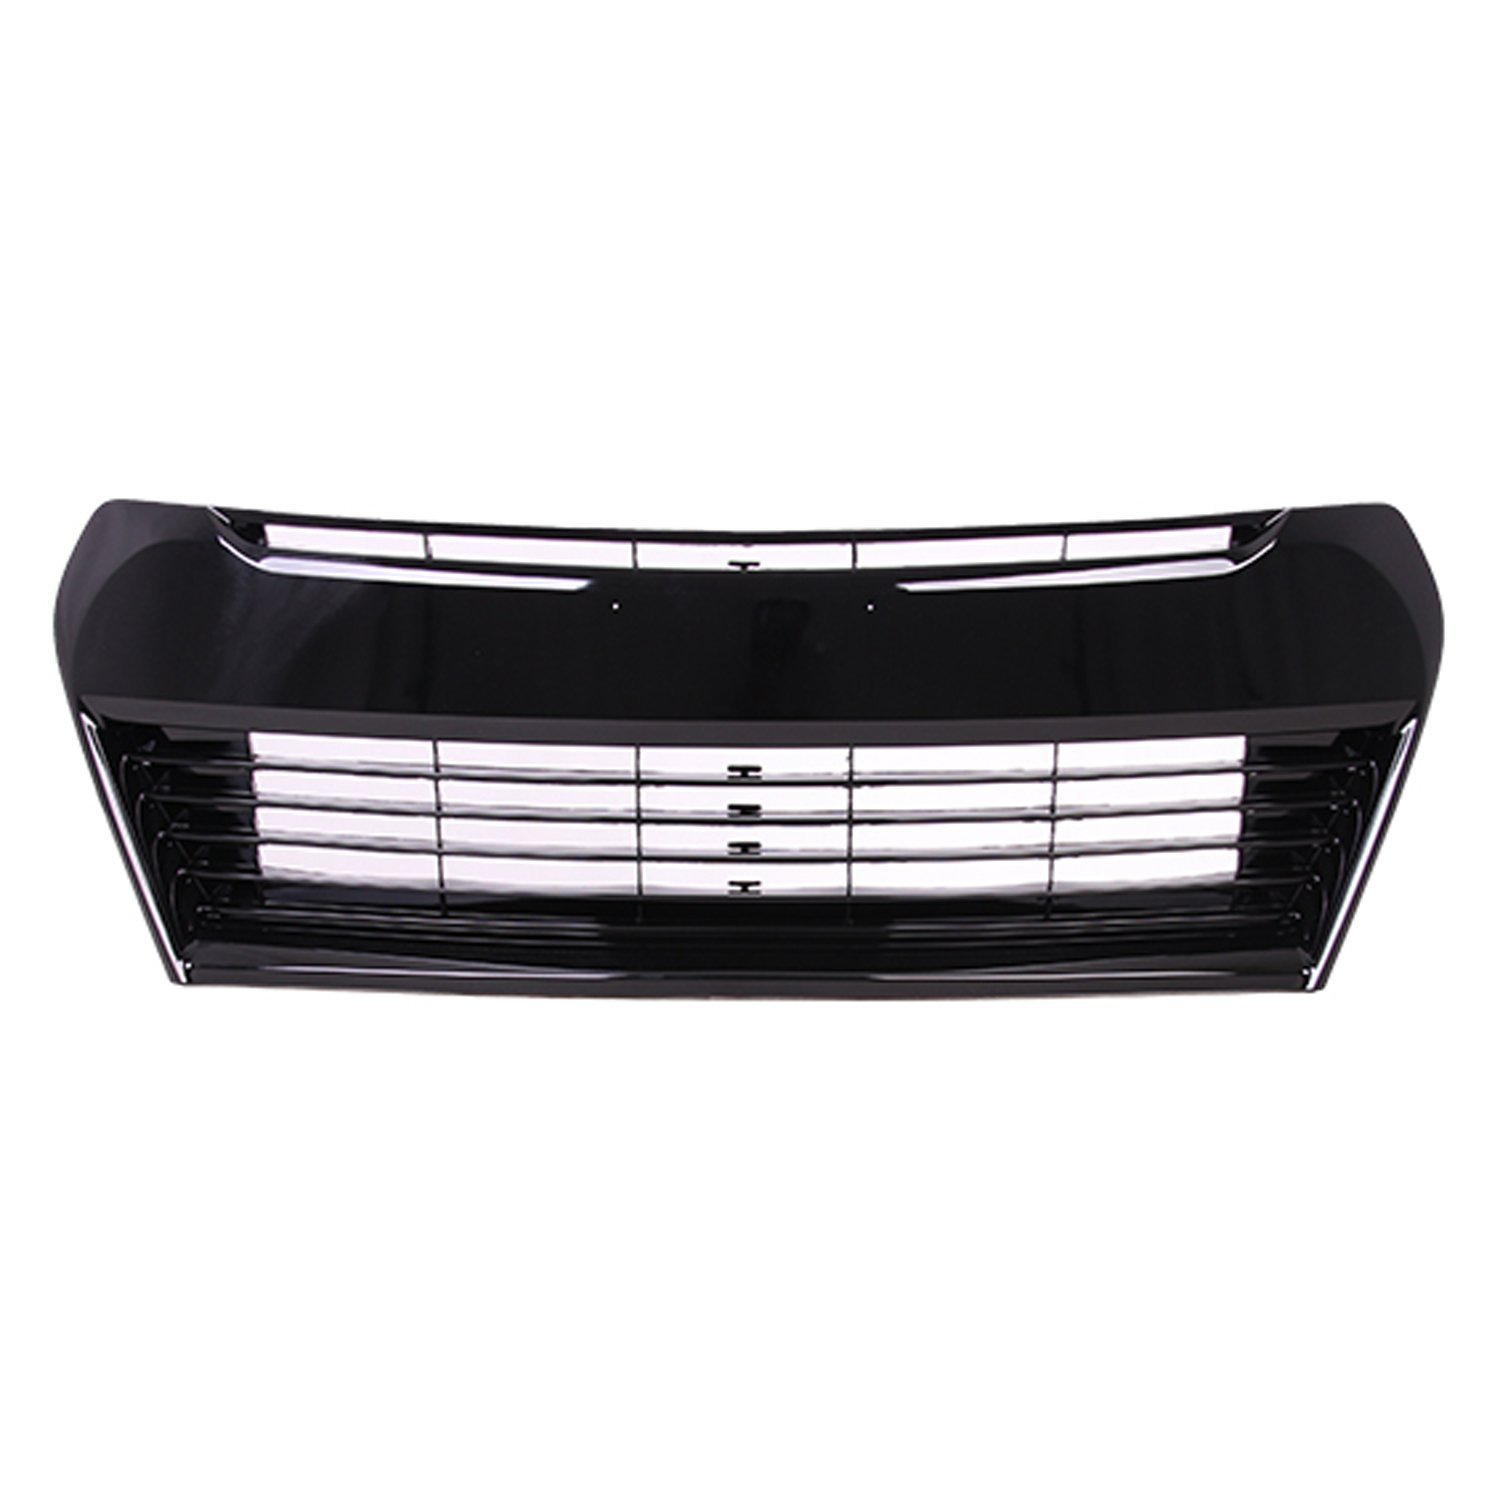 Crash Parts Plus CAPA Front Bumper Grille for 2014-2016 Toyota Corolla